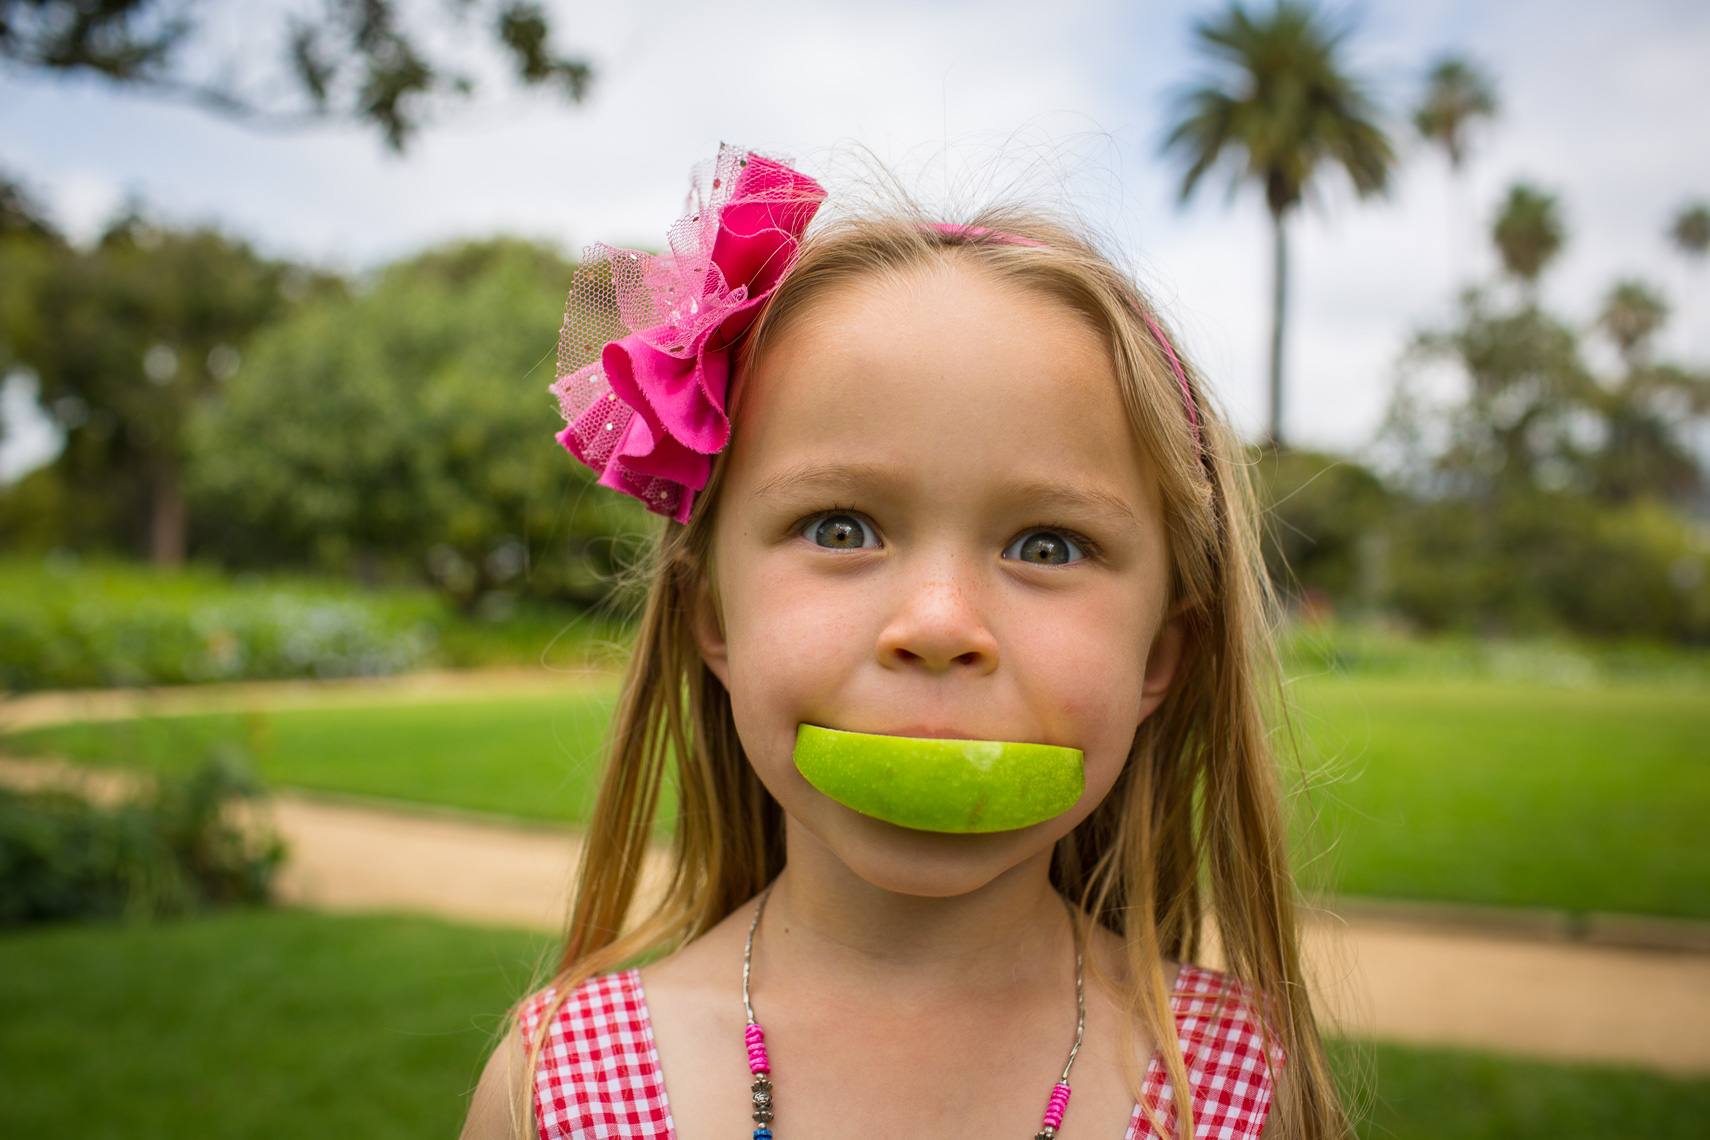 Kids and Children Lifestyle Photography Santa Barbara California